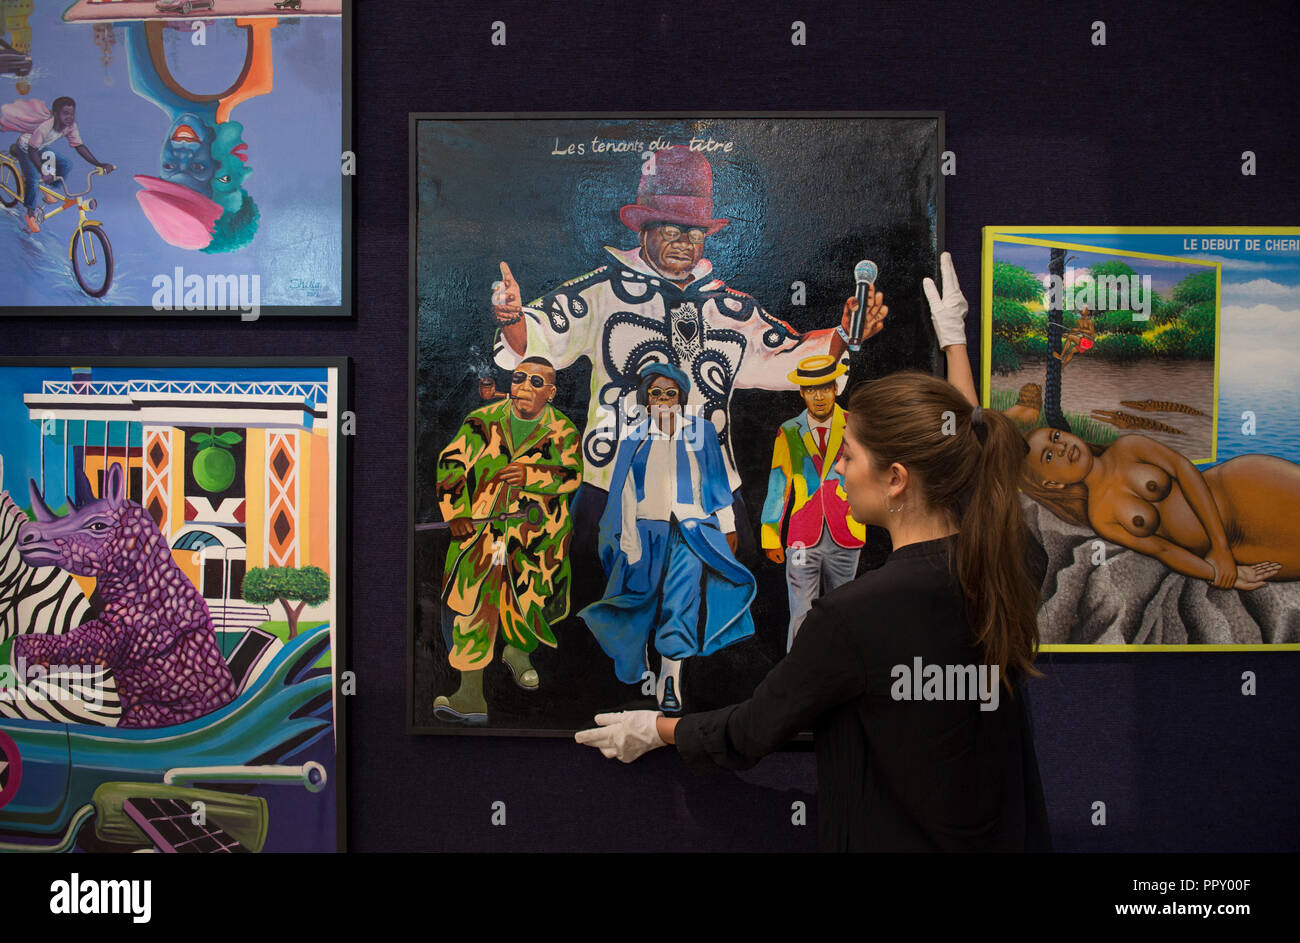 Bonhams, New Bond Street, London, UK. 28 September, 2018. Works from the exhibition, including highly regarded artists such as Chéri Samba, Aimé Mpane, and Freddy Tsimba, will be offered at Bonhams Africa Now sale on Thursday 4 October. Credit: Malcolm Park/Alamy Live News. - Stock Image